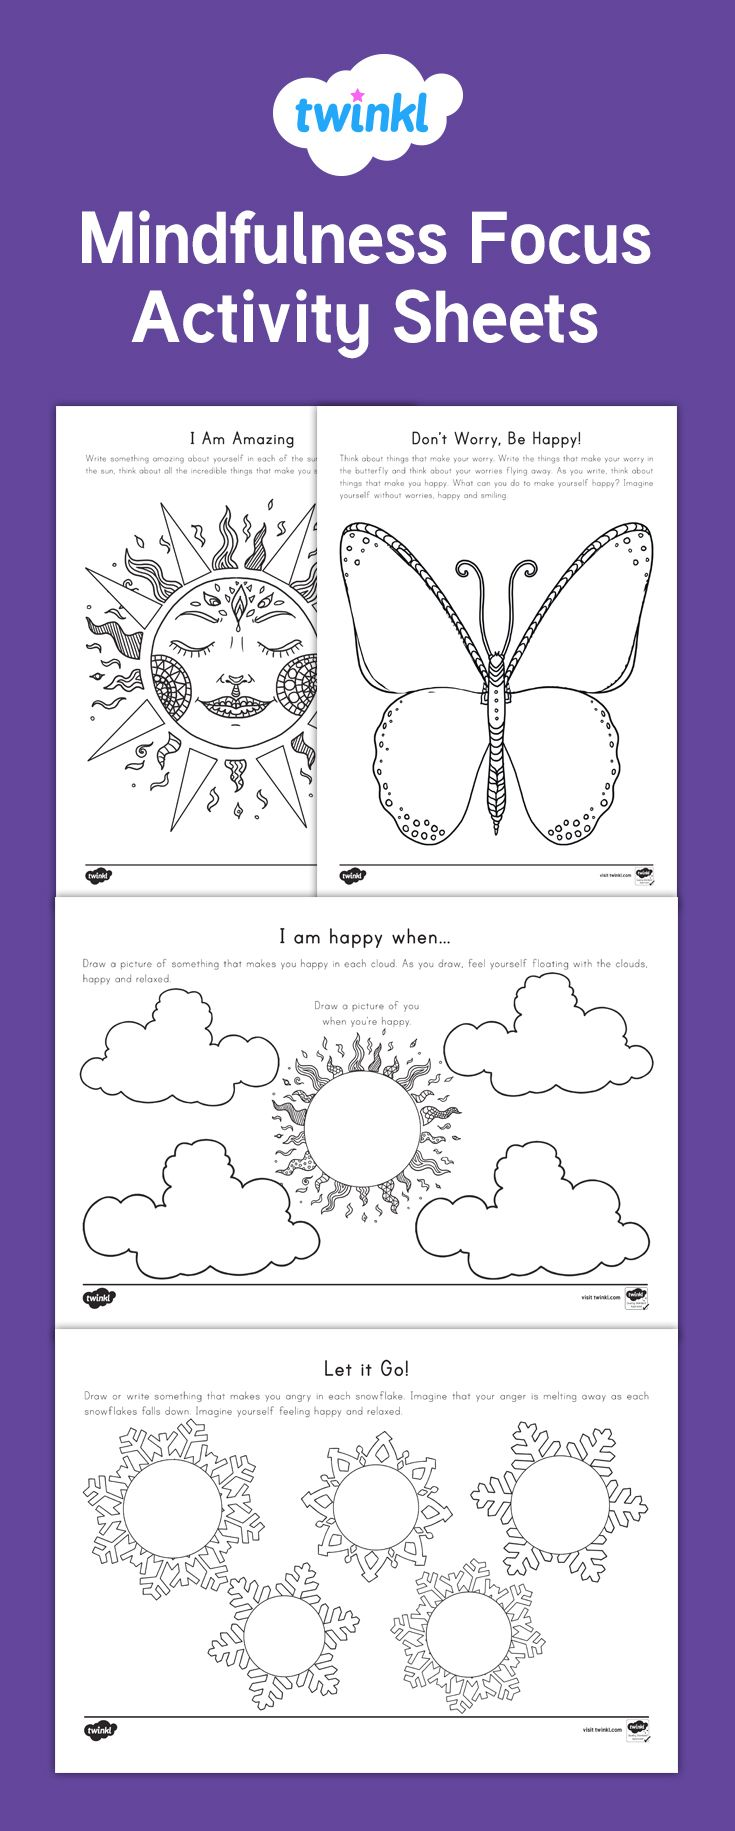 Use these activity sheets to help students focus and